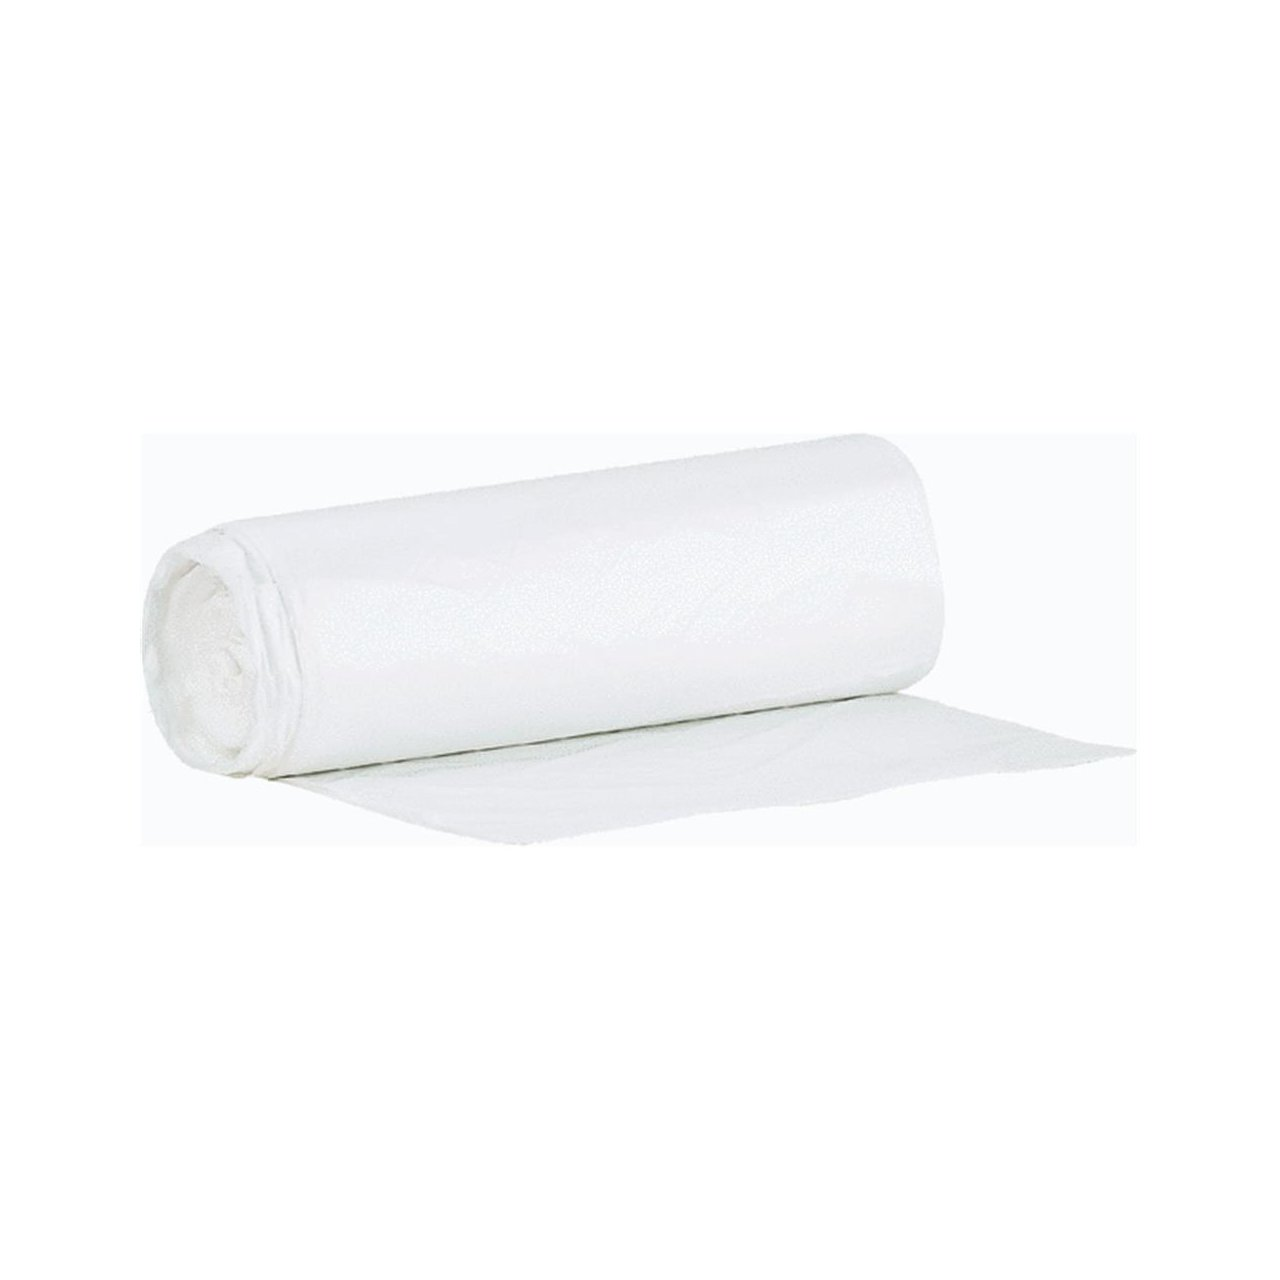 30' x 36' High-Density Can Liner with 13 Micron Equivalent in Clear